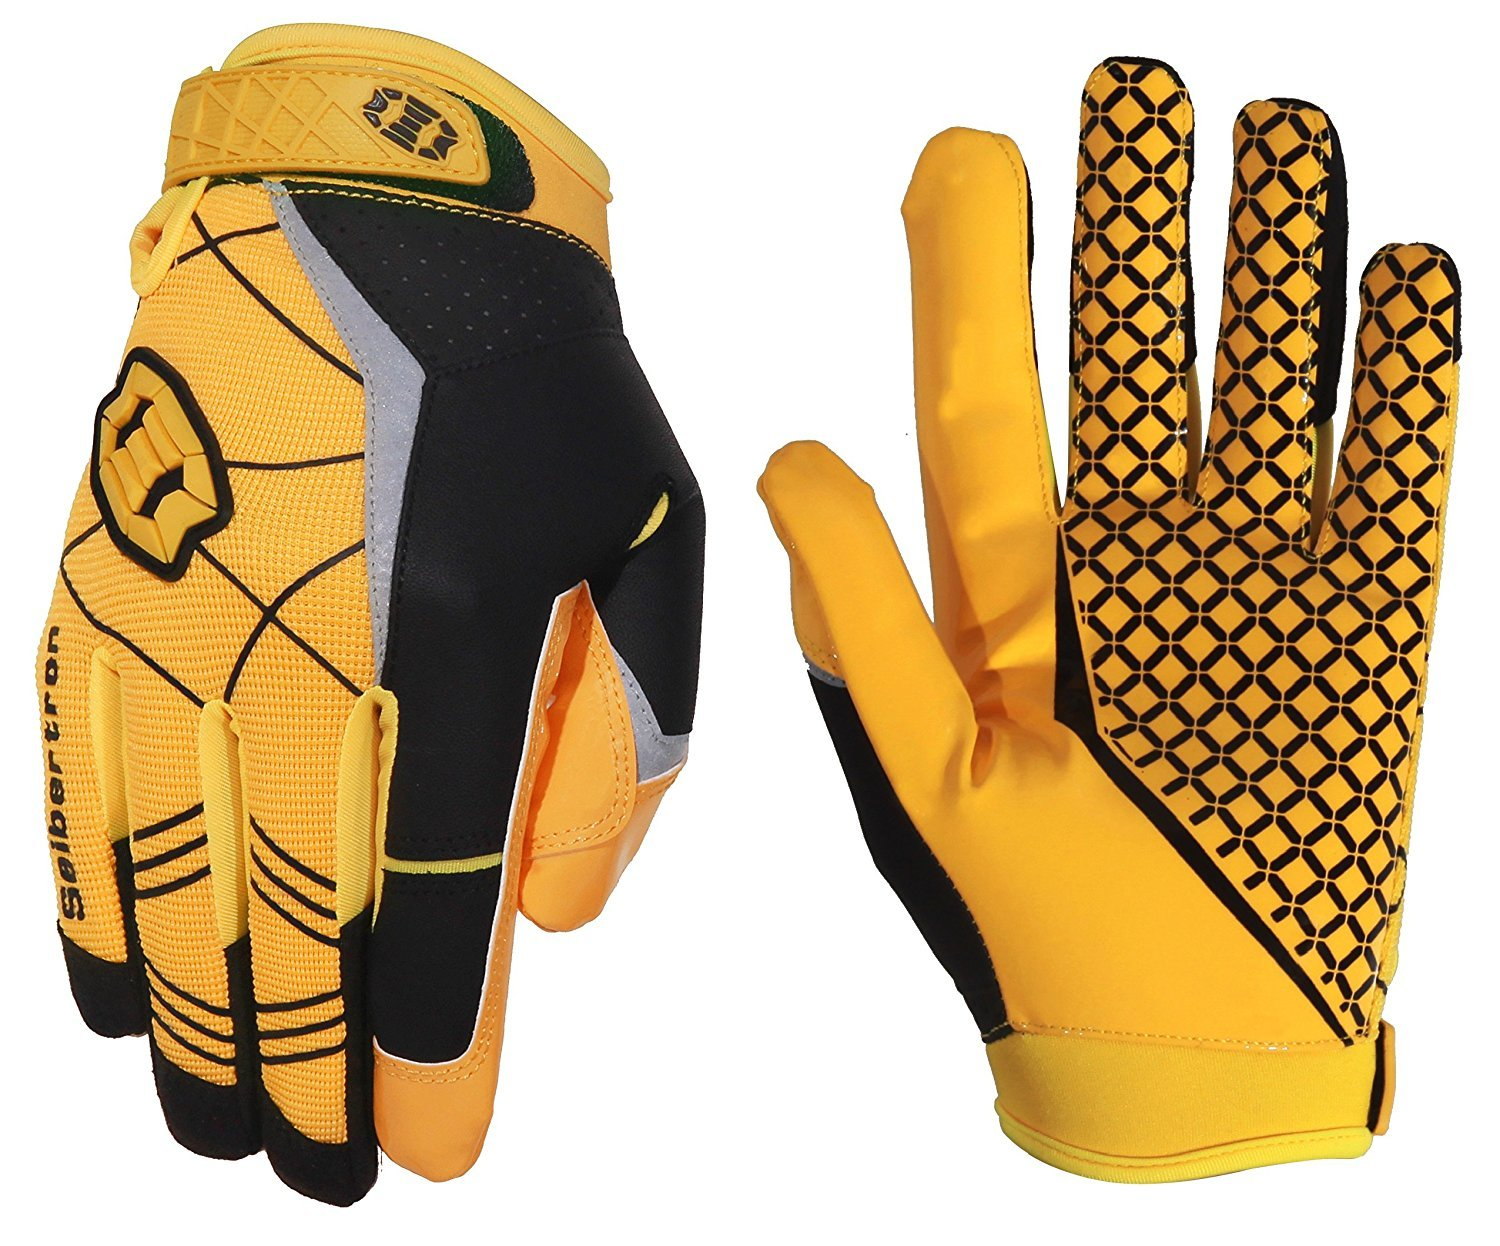 Seibertron Pro 3.0 Elite Ultra-Stick Sports Receiver Glove American Football Gloves Youth and Adult/Guantes de Fútbol Americano para Juventud y Adulto Limited